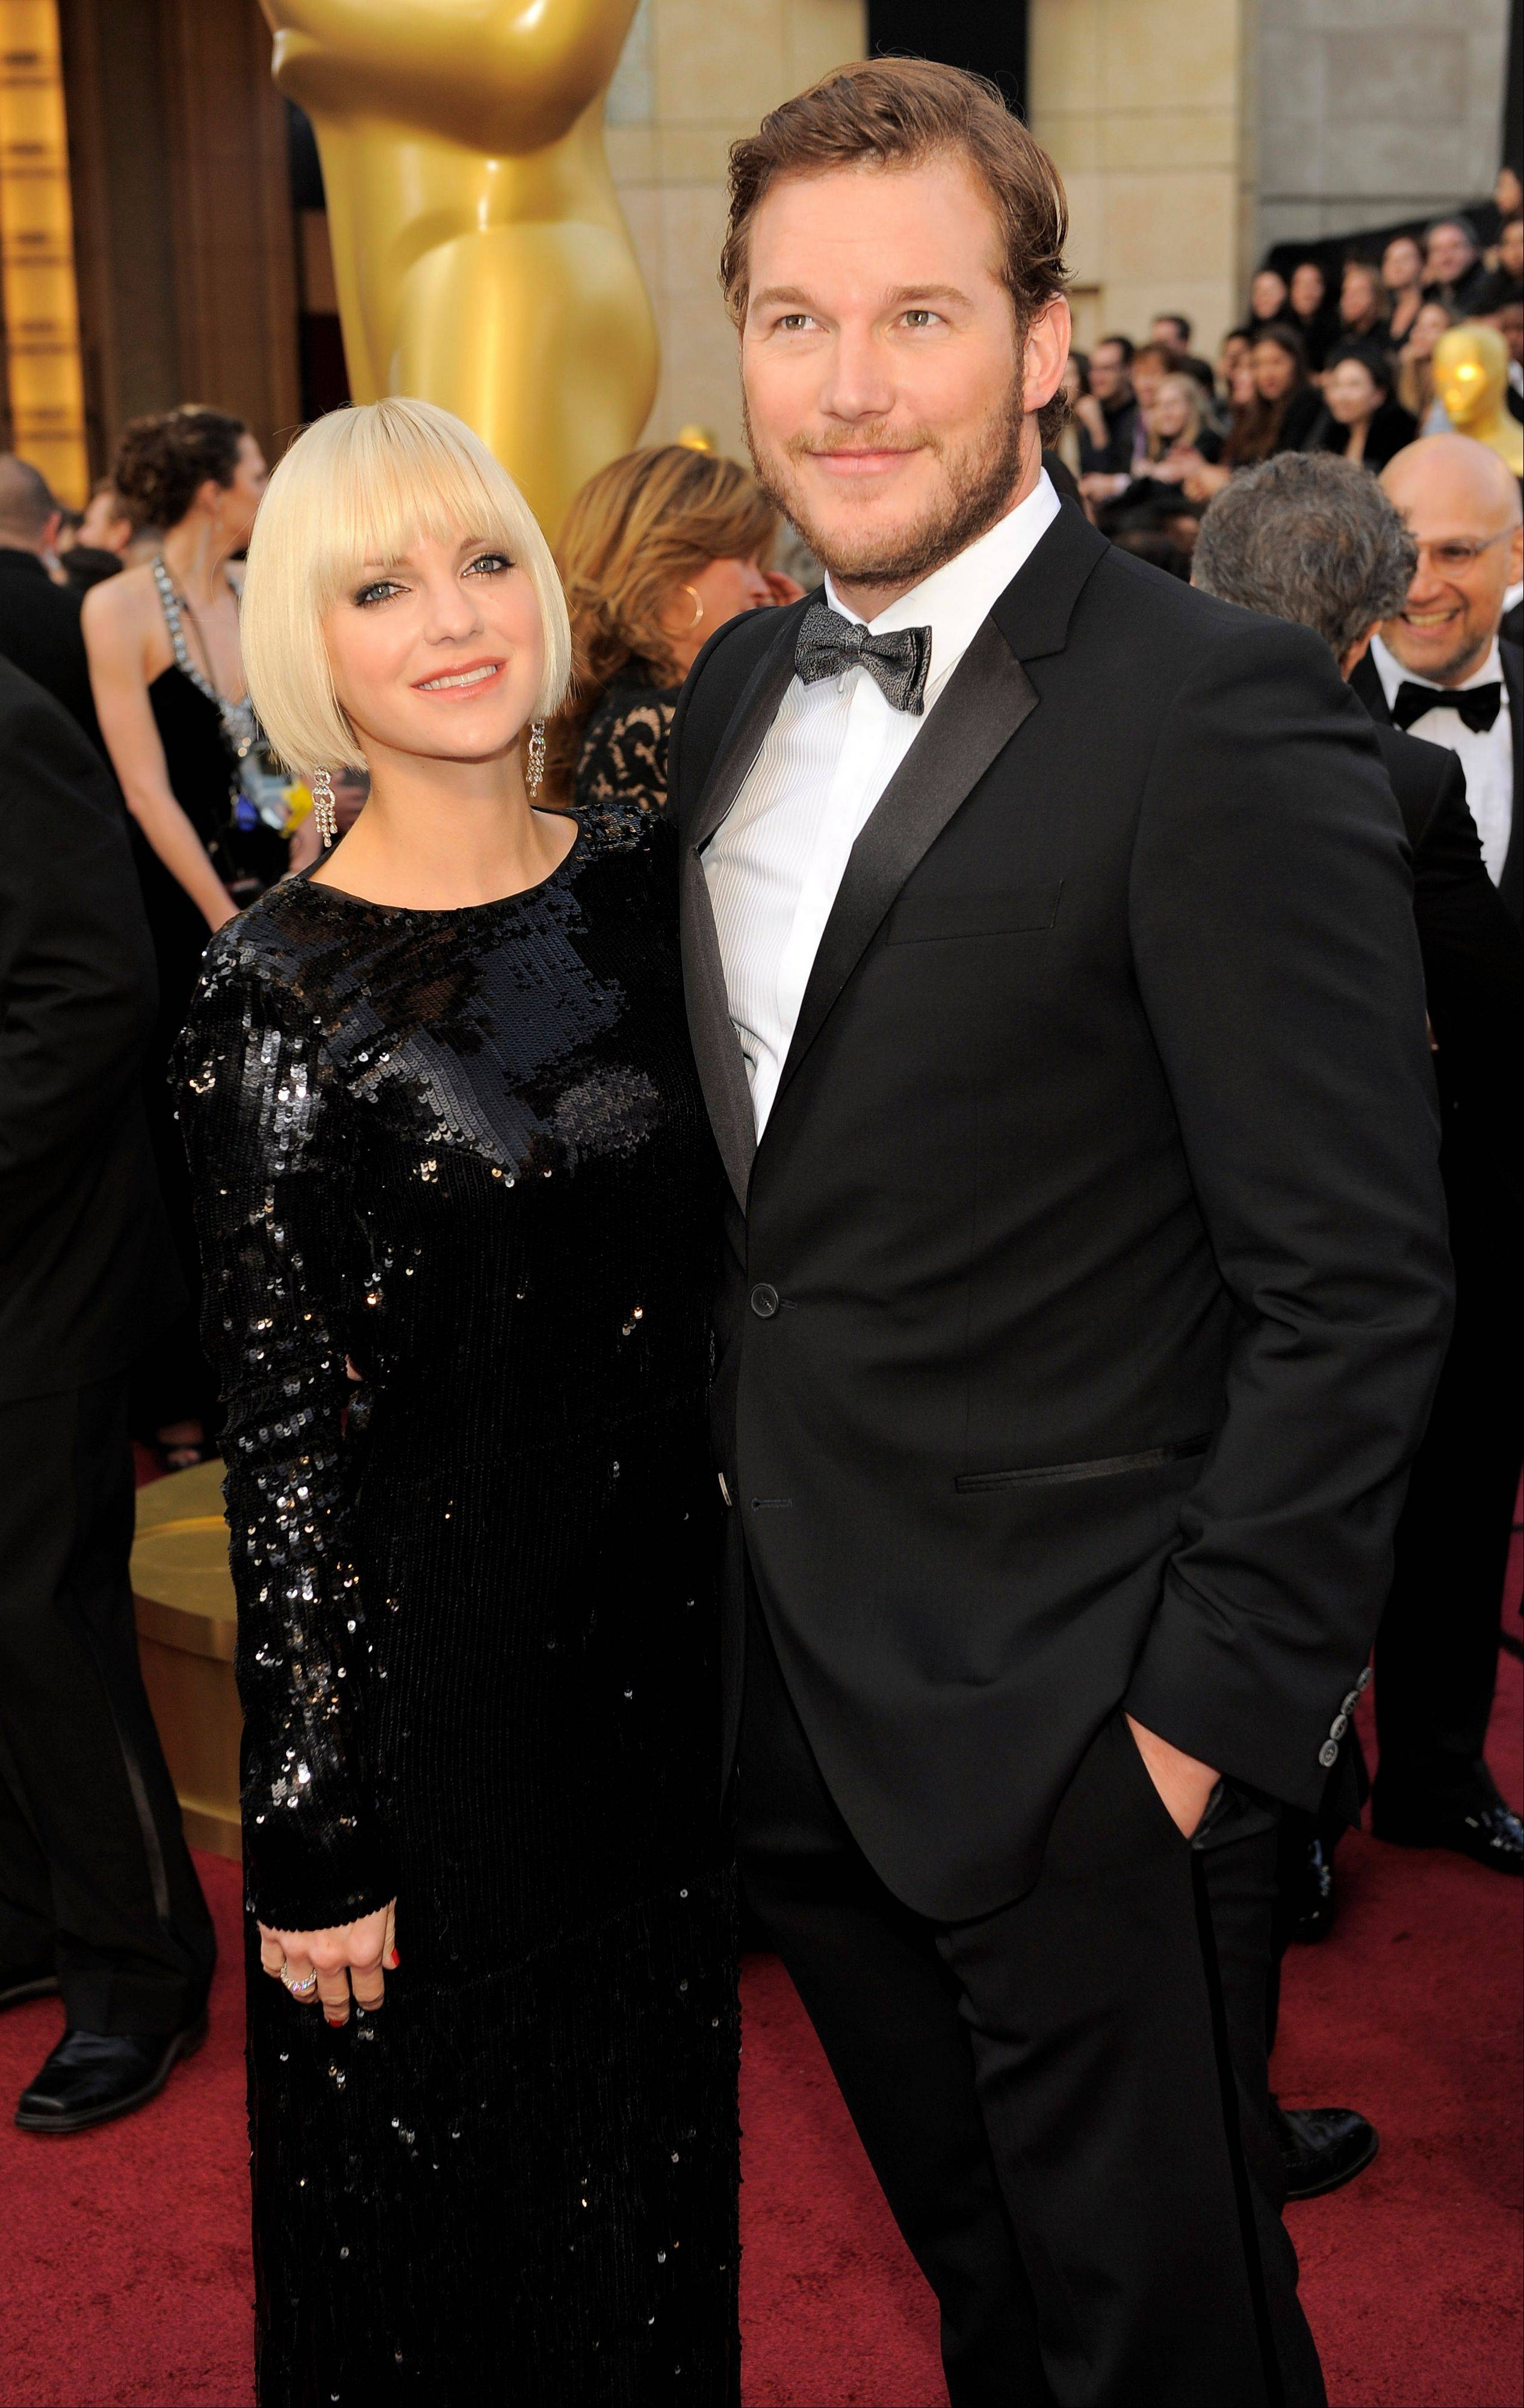 Anna Faris has given birth to a baby boy, her first child with her actor husband, Chris Pratt.